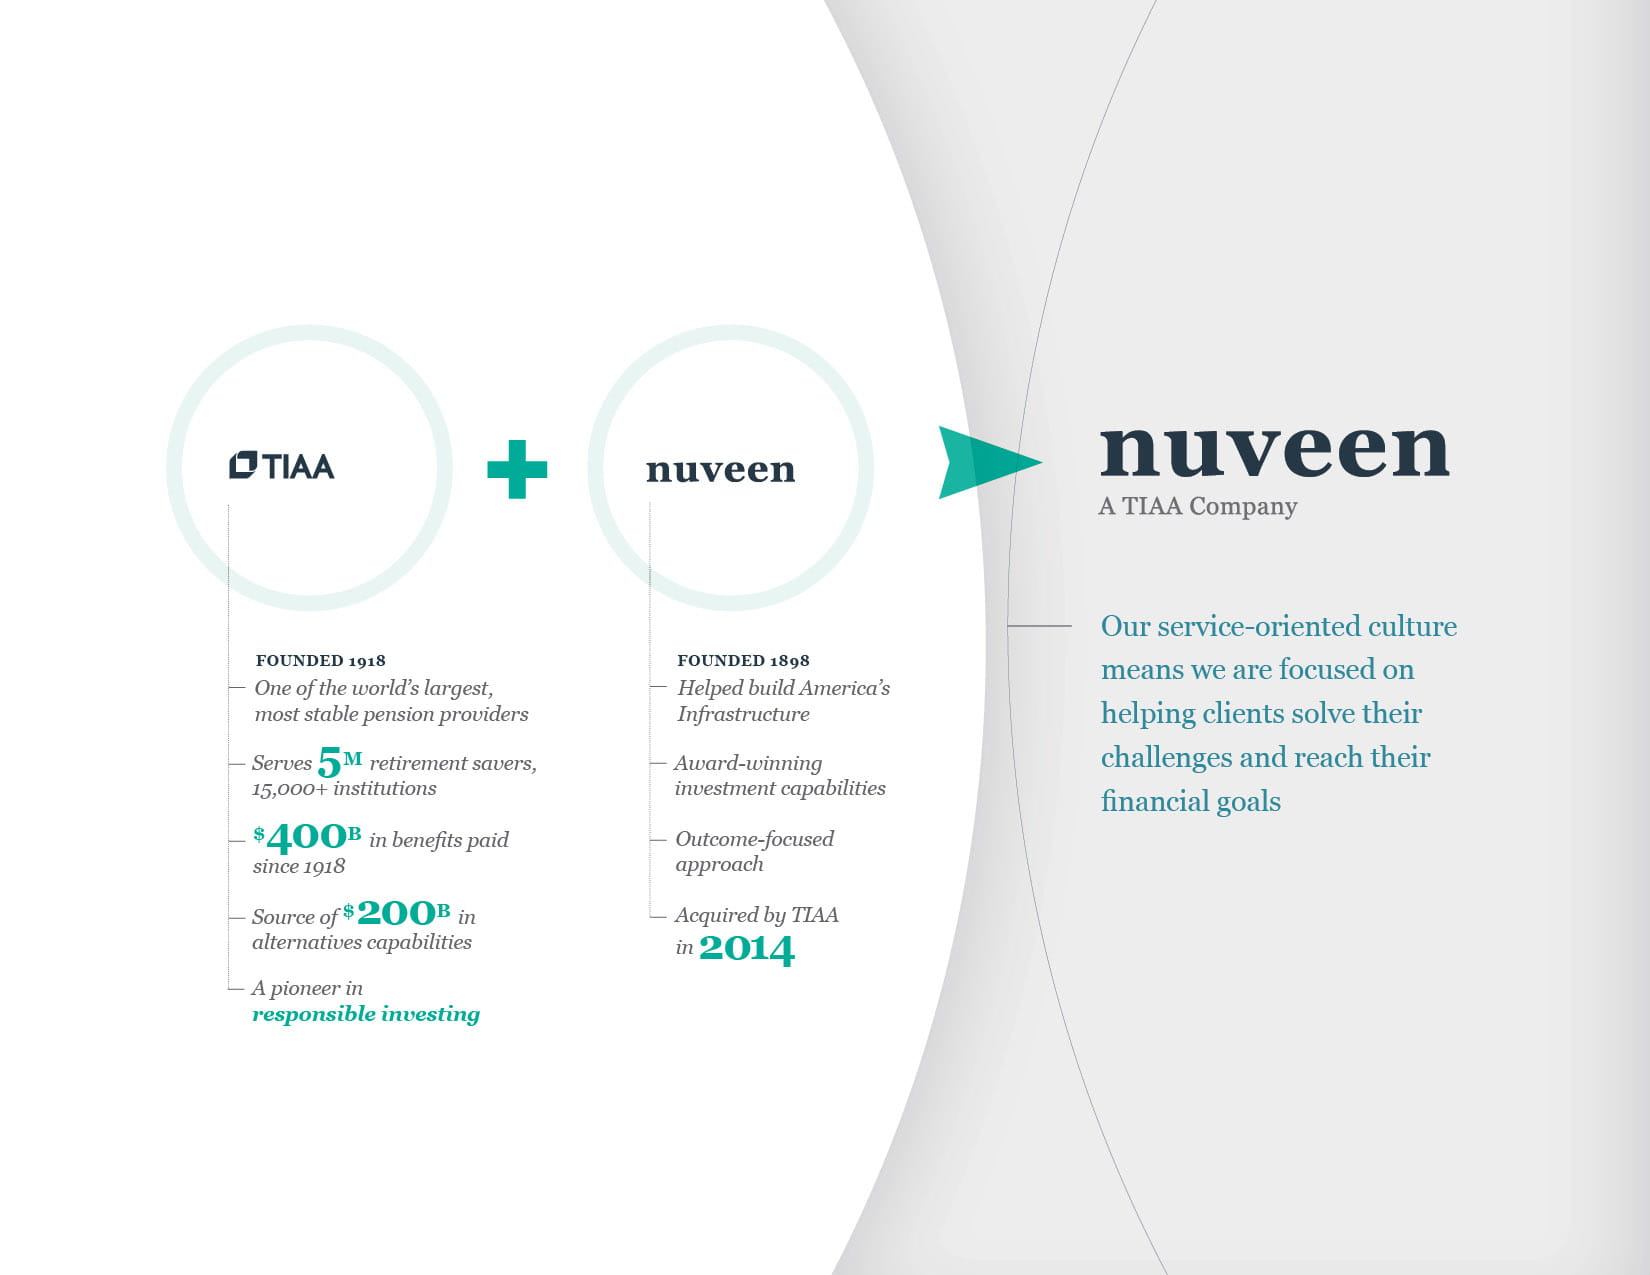 Graphic of Nuveen and TIAA history